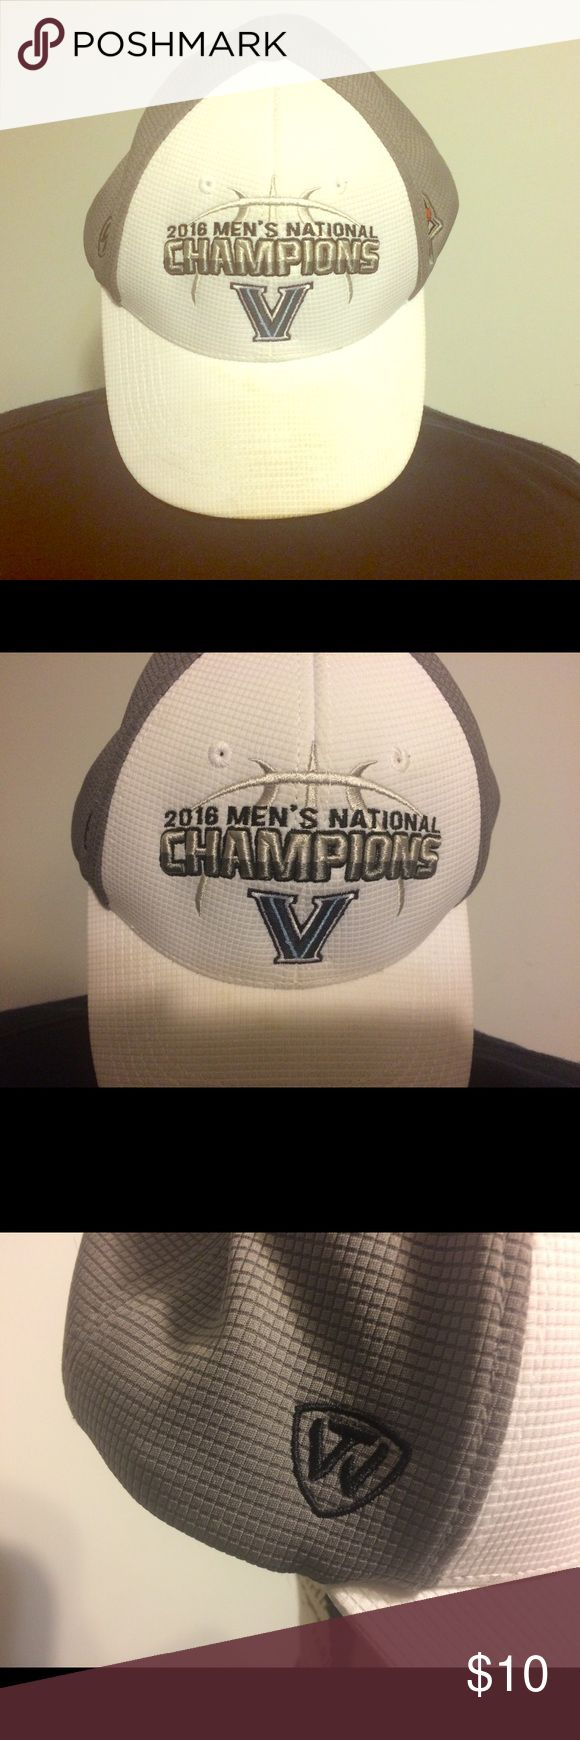 Villanova 2016 men's national champions hat 2016 men's national champions Villanova hat 100% polyester one size fits all Top of the World Accessories Hats